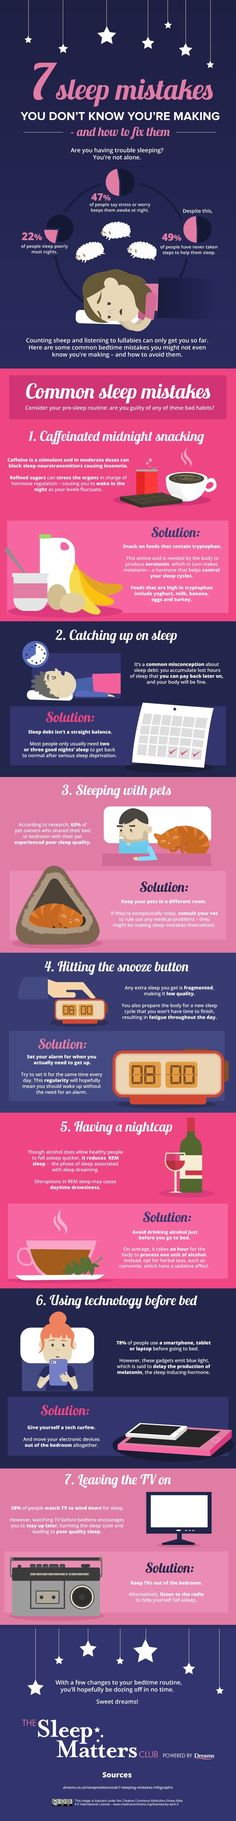 healthy sleeping patterns #infographic